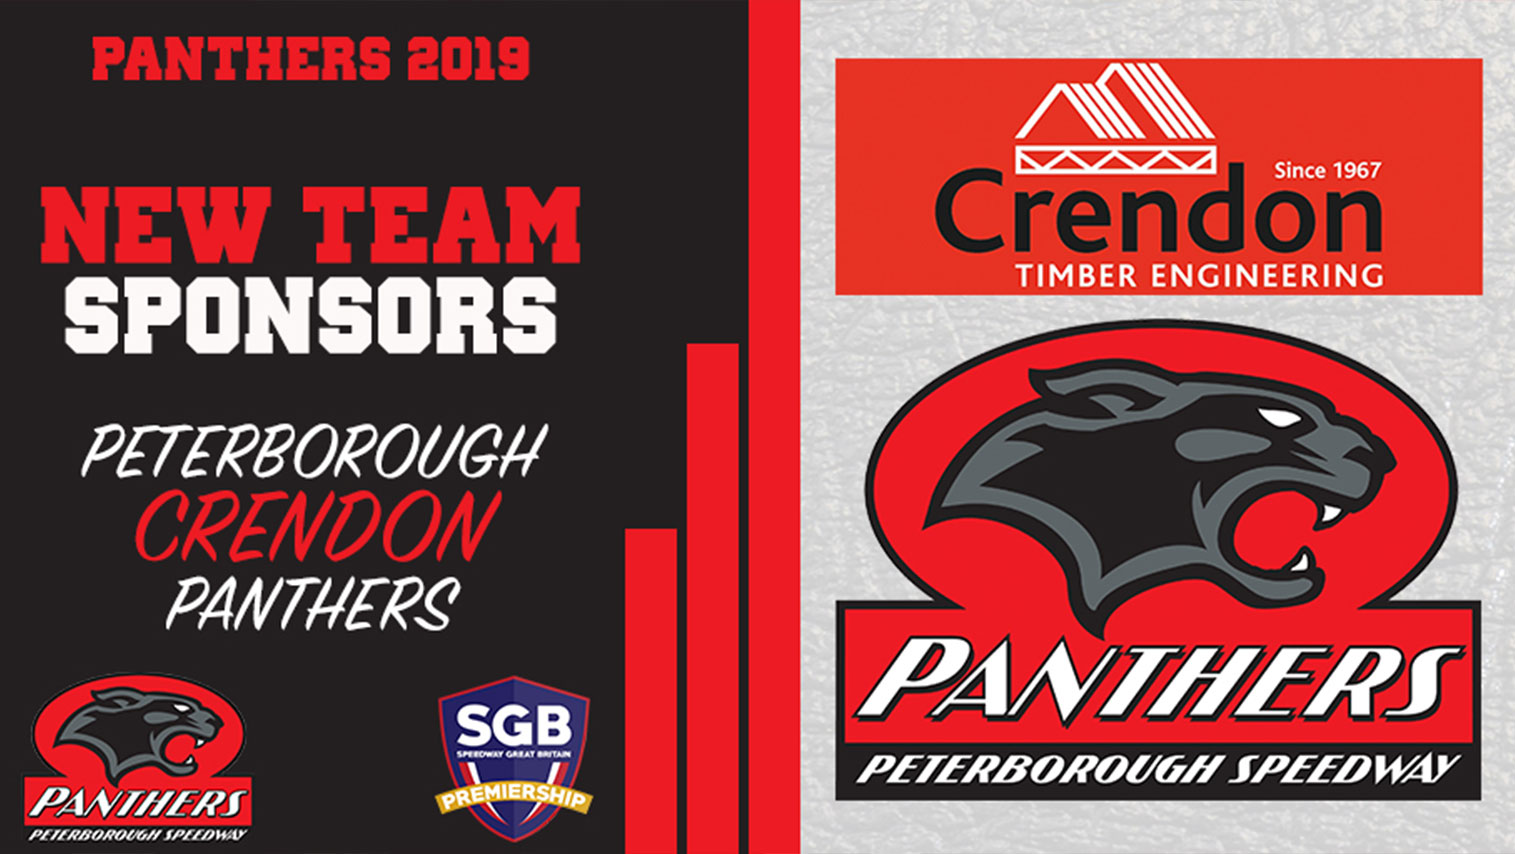 Crendon are Backing Panthers